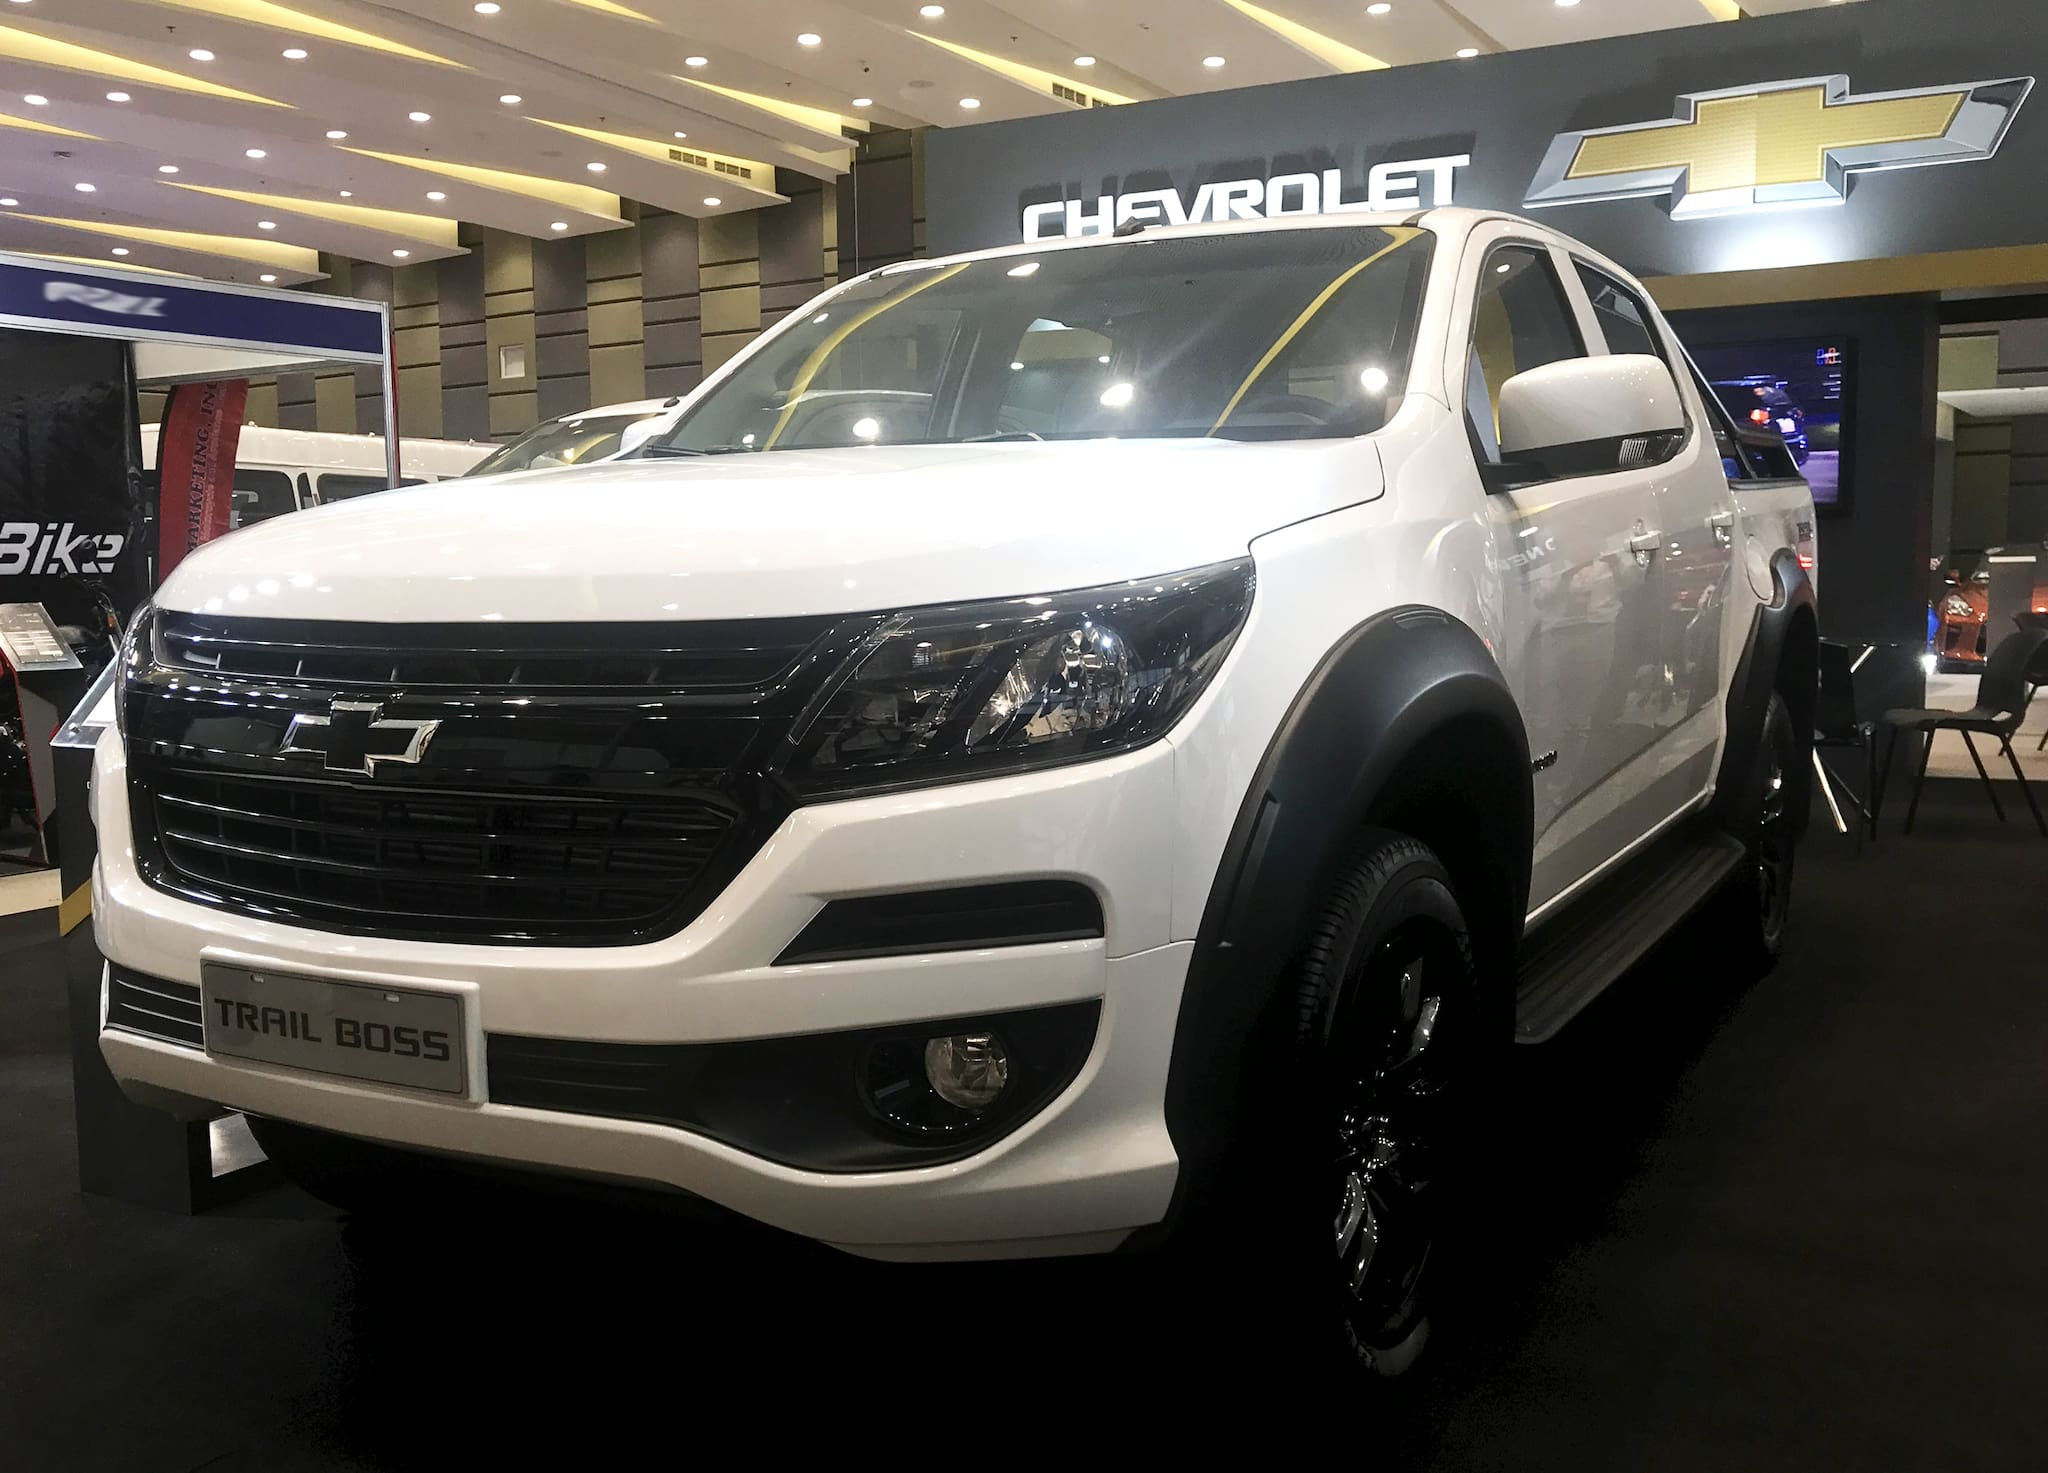 Chevrolet Ph Launches Chevrolet Colorado Trail Boss